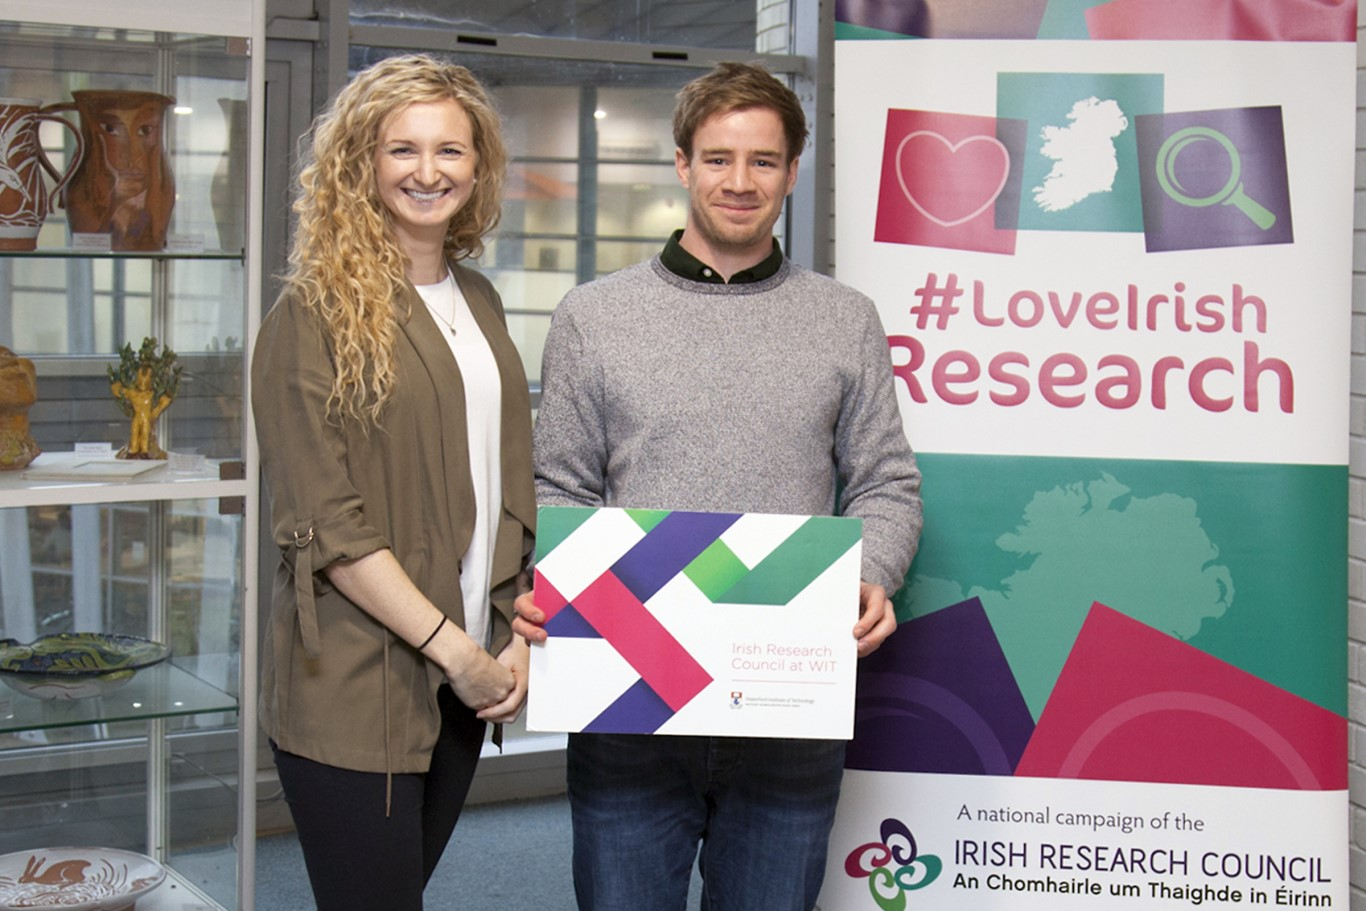 Pictured are Dr SarahJane Cullen and Arthur Dunne